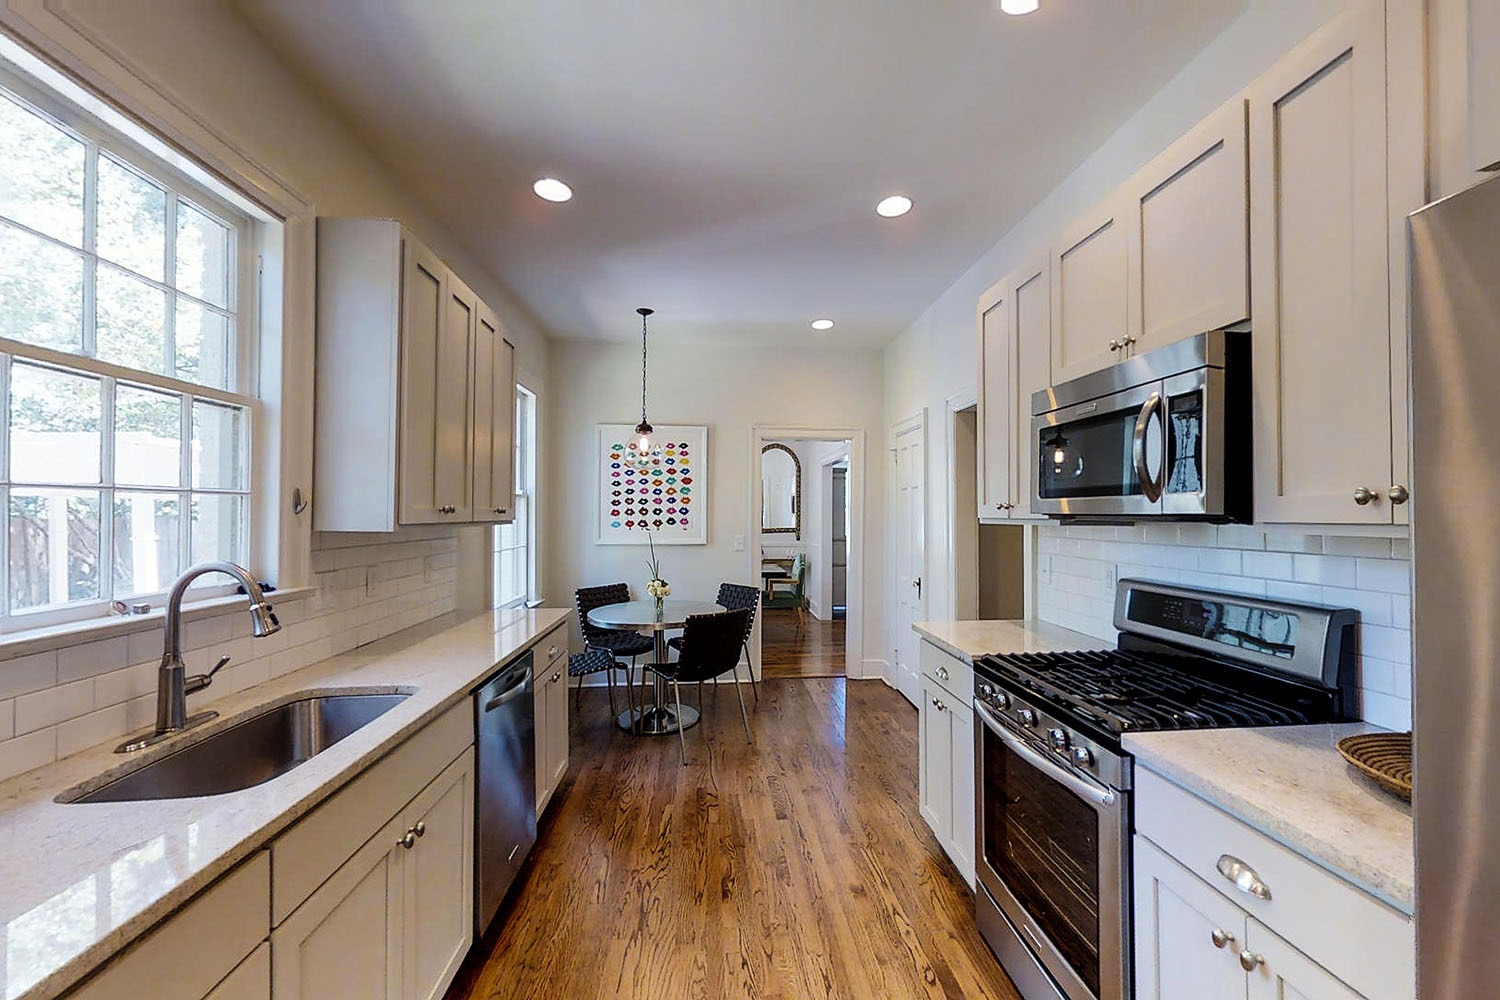 MLS Southview kitchen remodeling montgomery al I Front view at Southview Ave in historic Cloverdale Montgomery AL